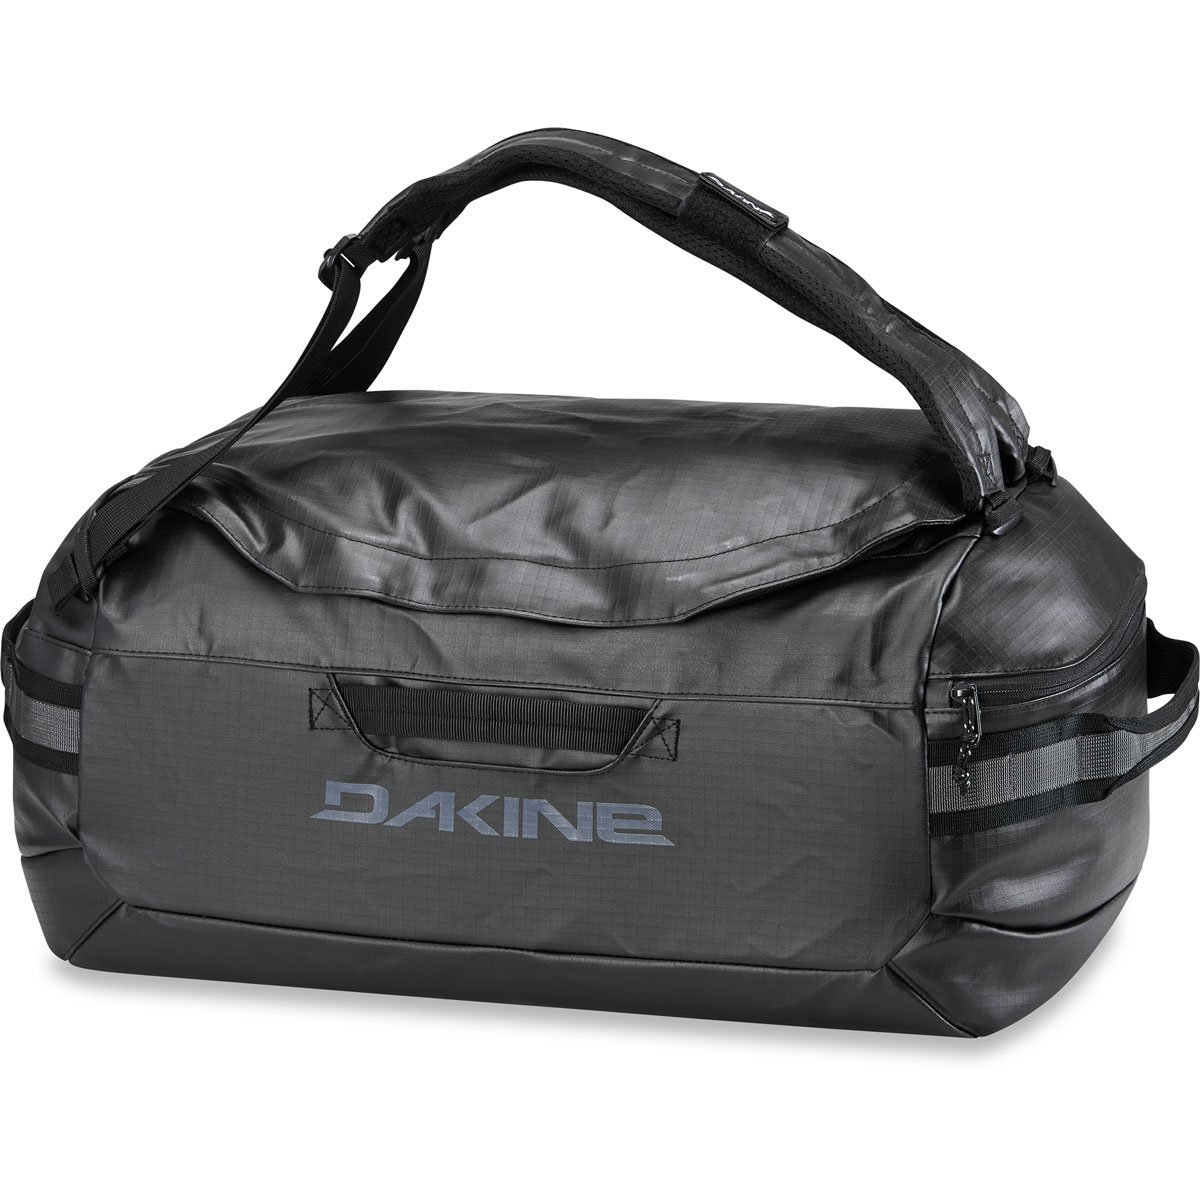 Dakine Ranger Duffle (Multiple Color and Size Options)